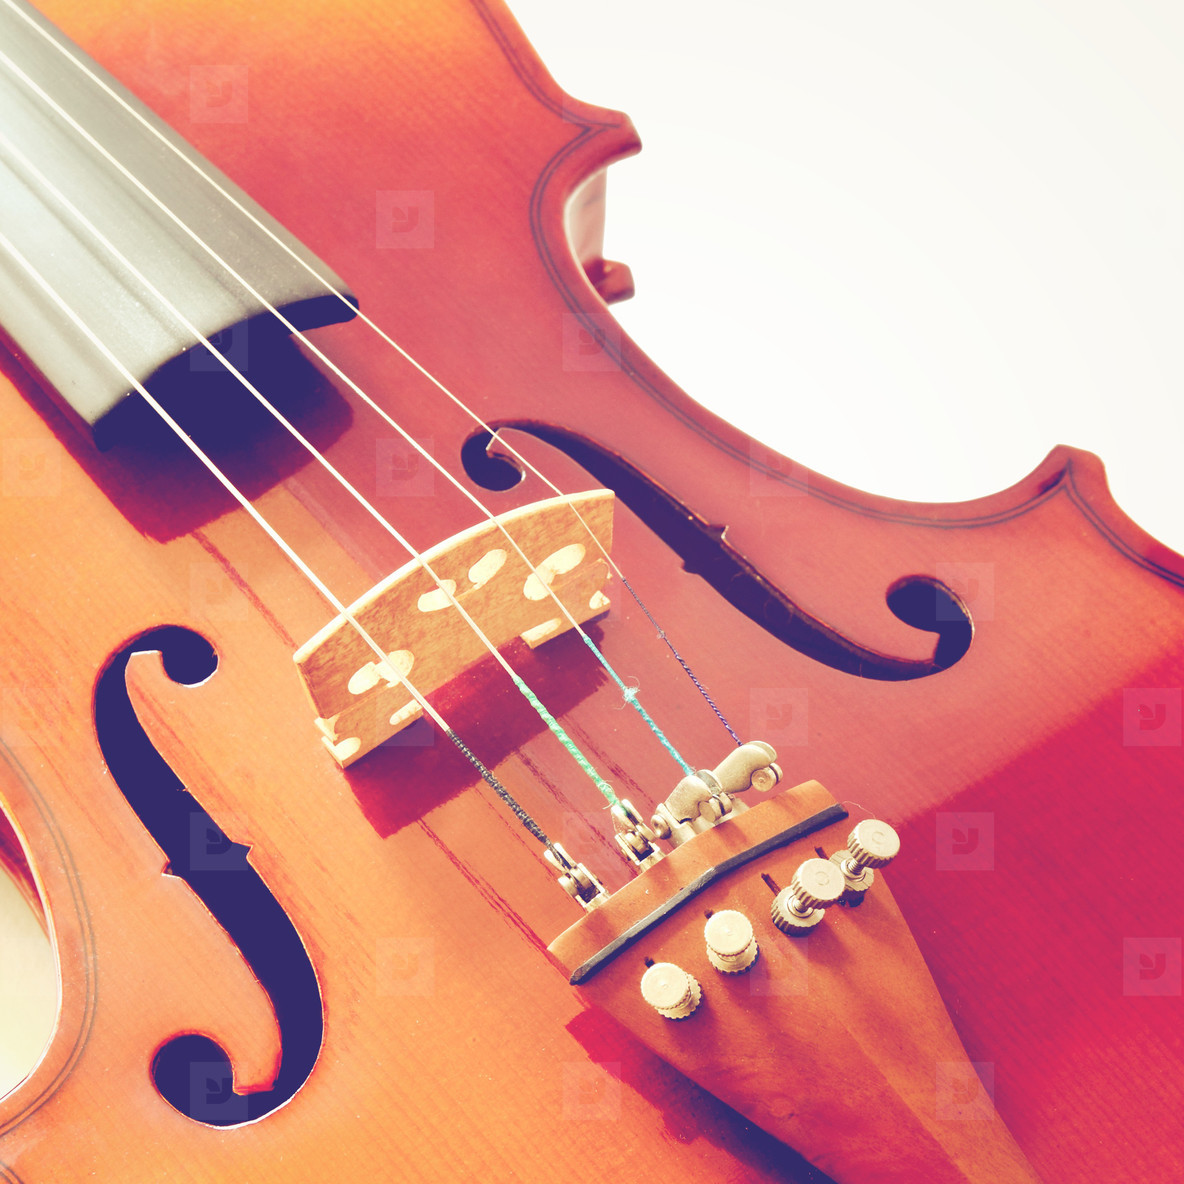 Part of violin